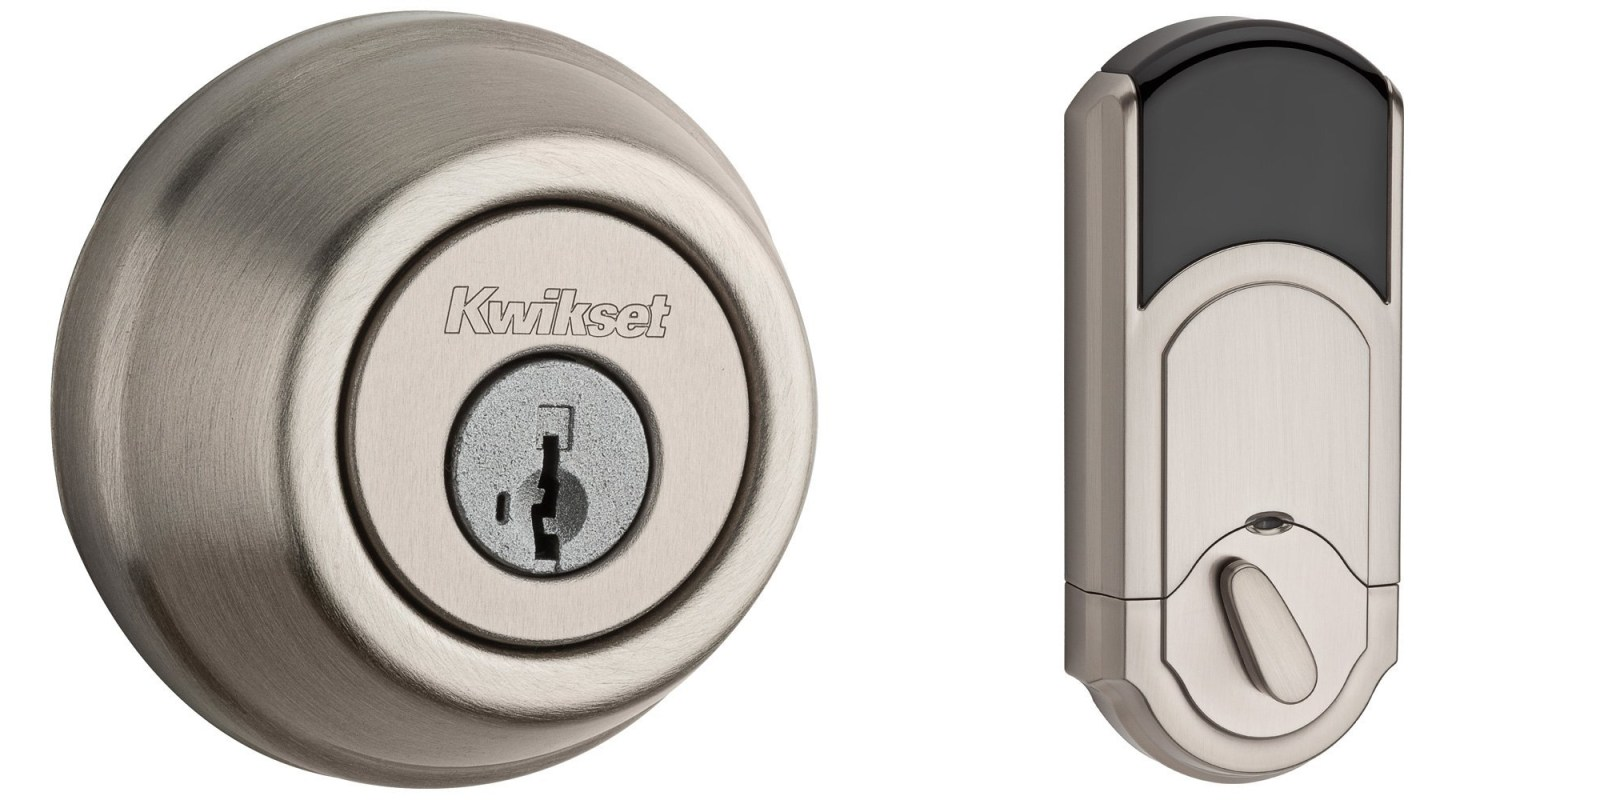 Kwikset drops the extras on its new internet-connected deadbolt lock to hit a lower price point